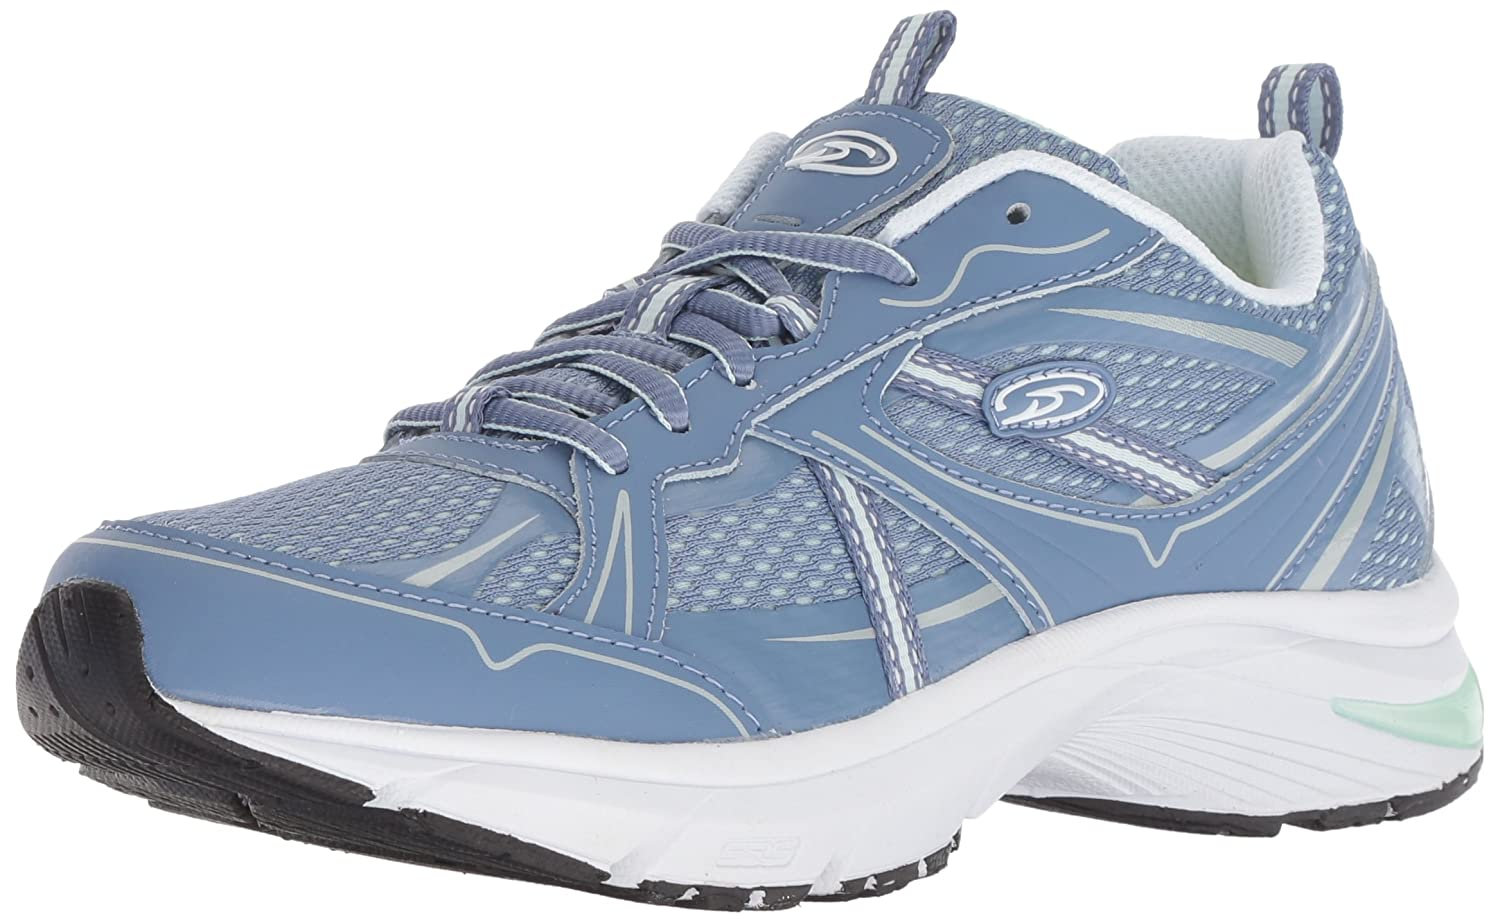 Dr. Scholl's Shoes Women's Persue Sneaker B07BJLMJ7Y 7 M US|Blue/Mint